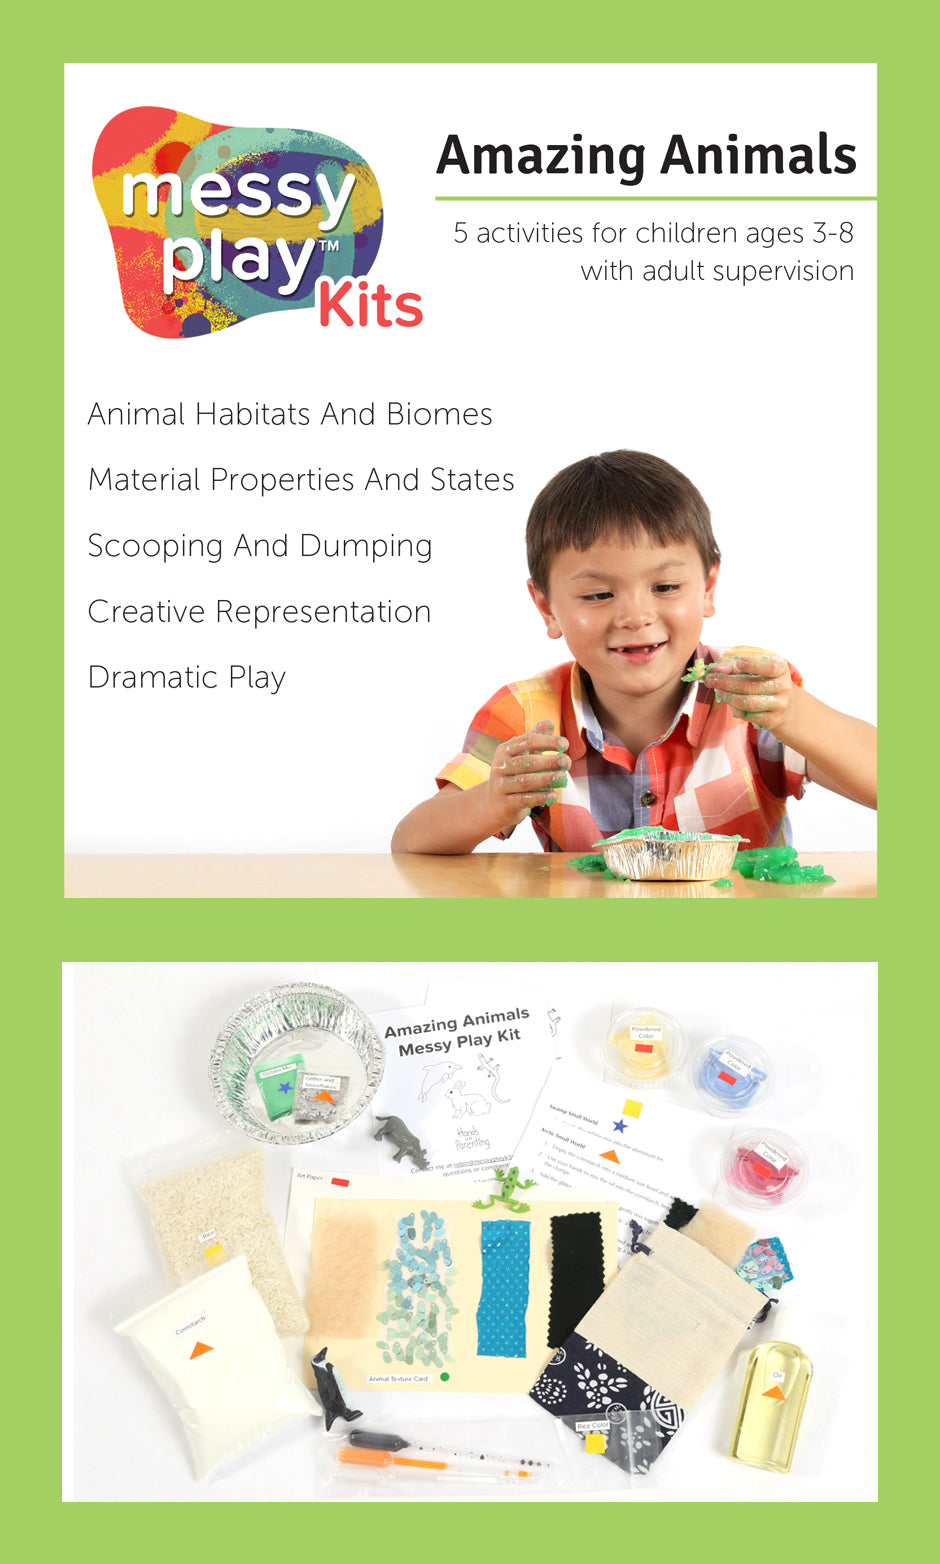 Amazing Animals Messy Play Kit Label